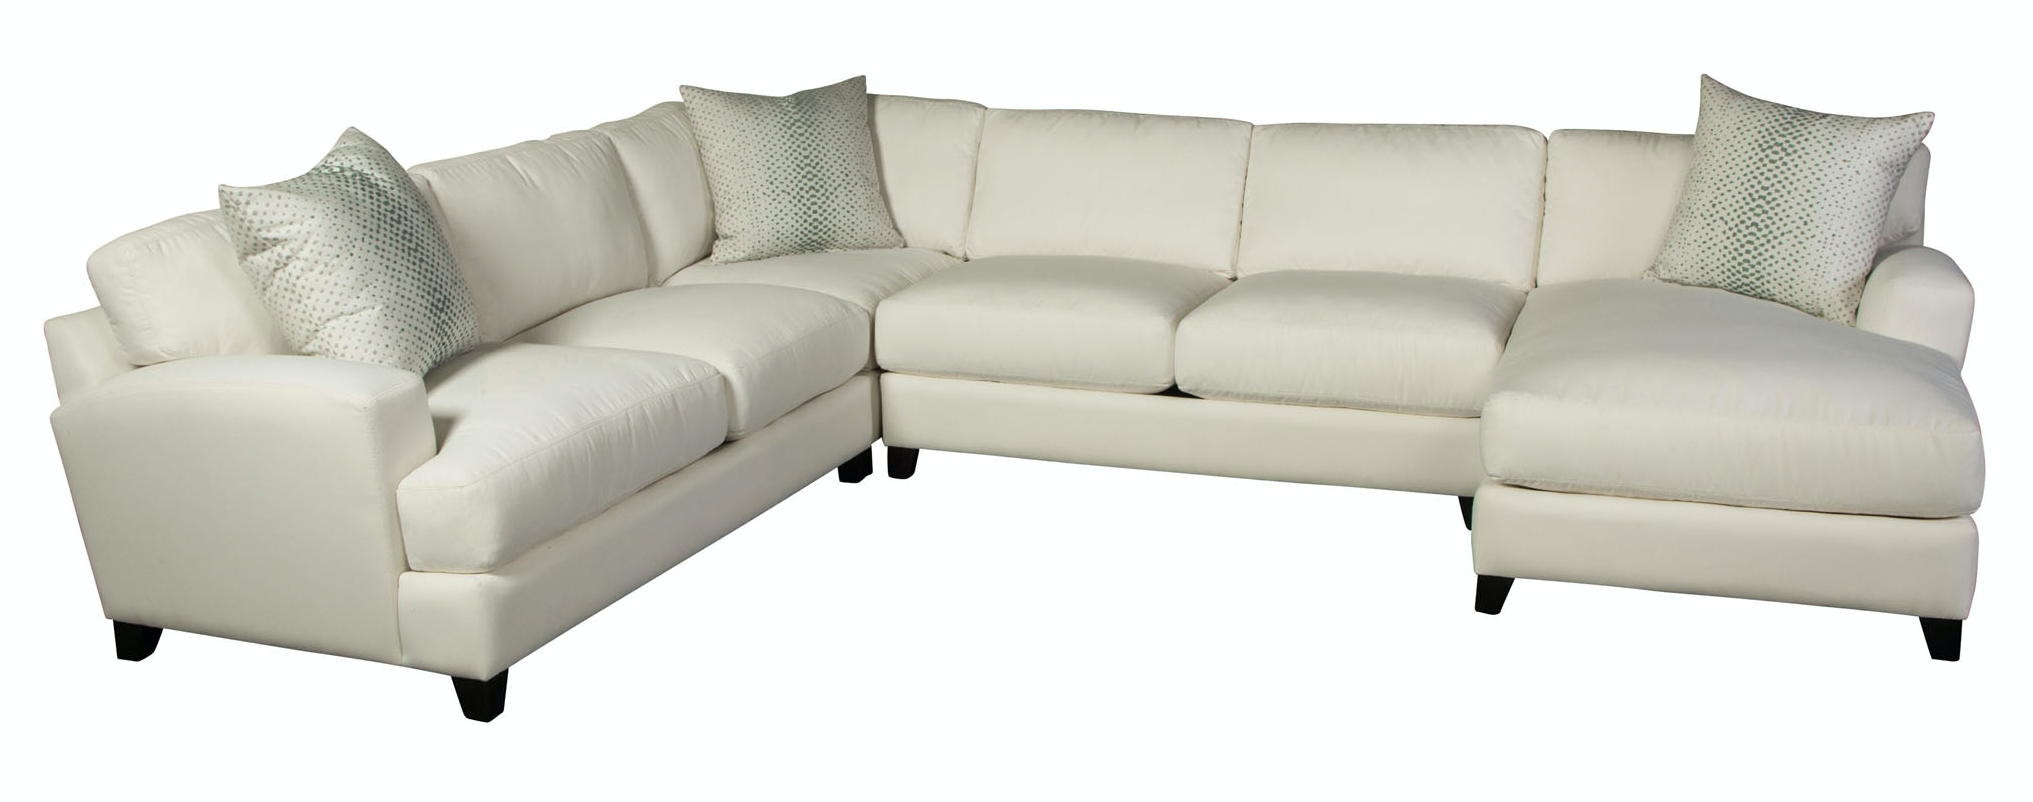 Jonathan Louis International Clarence Sectional 133 Sectional ...